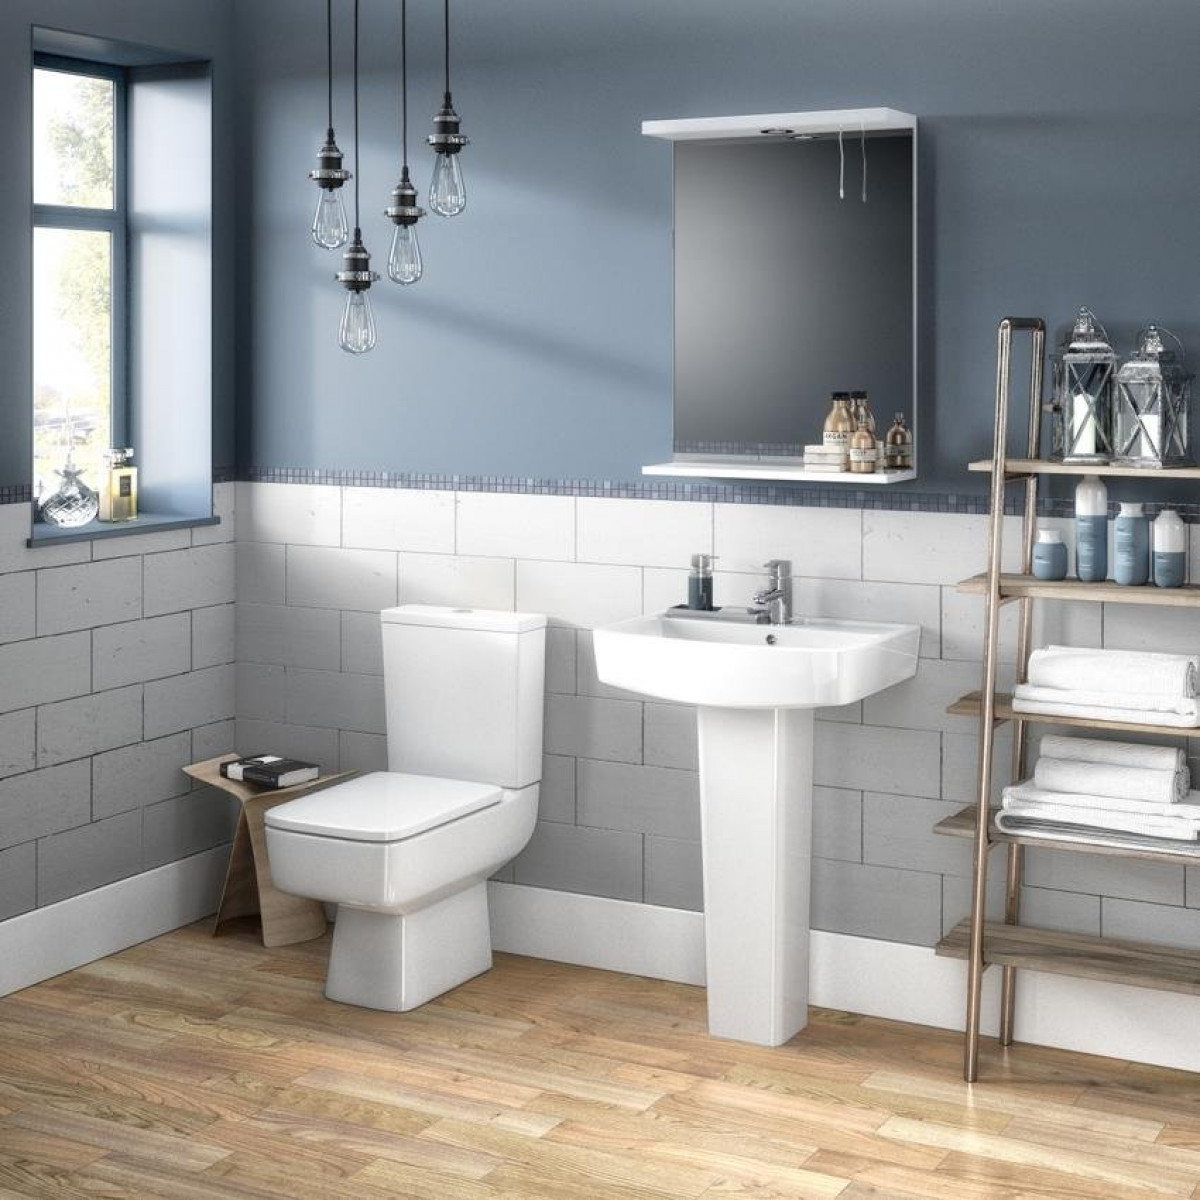 Premier bliss semi flush to wall pan cistern nch100b for Flush with the wall